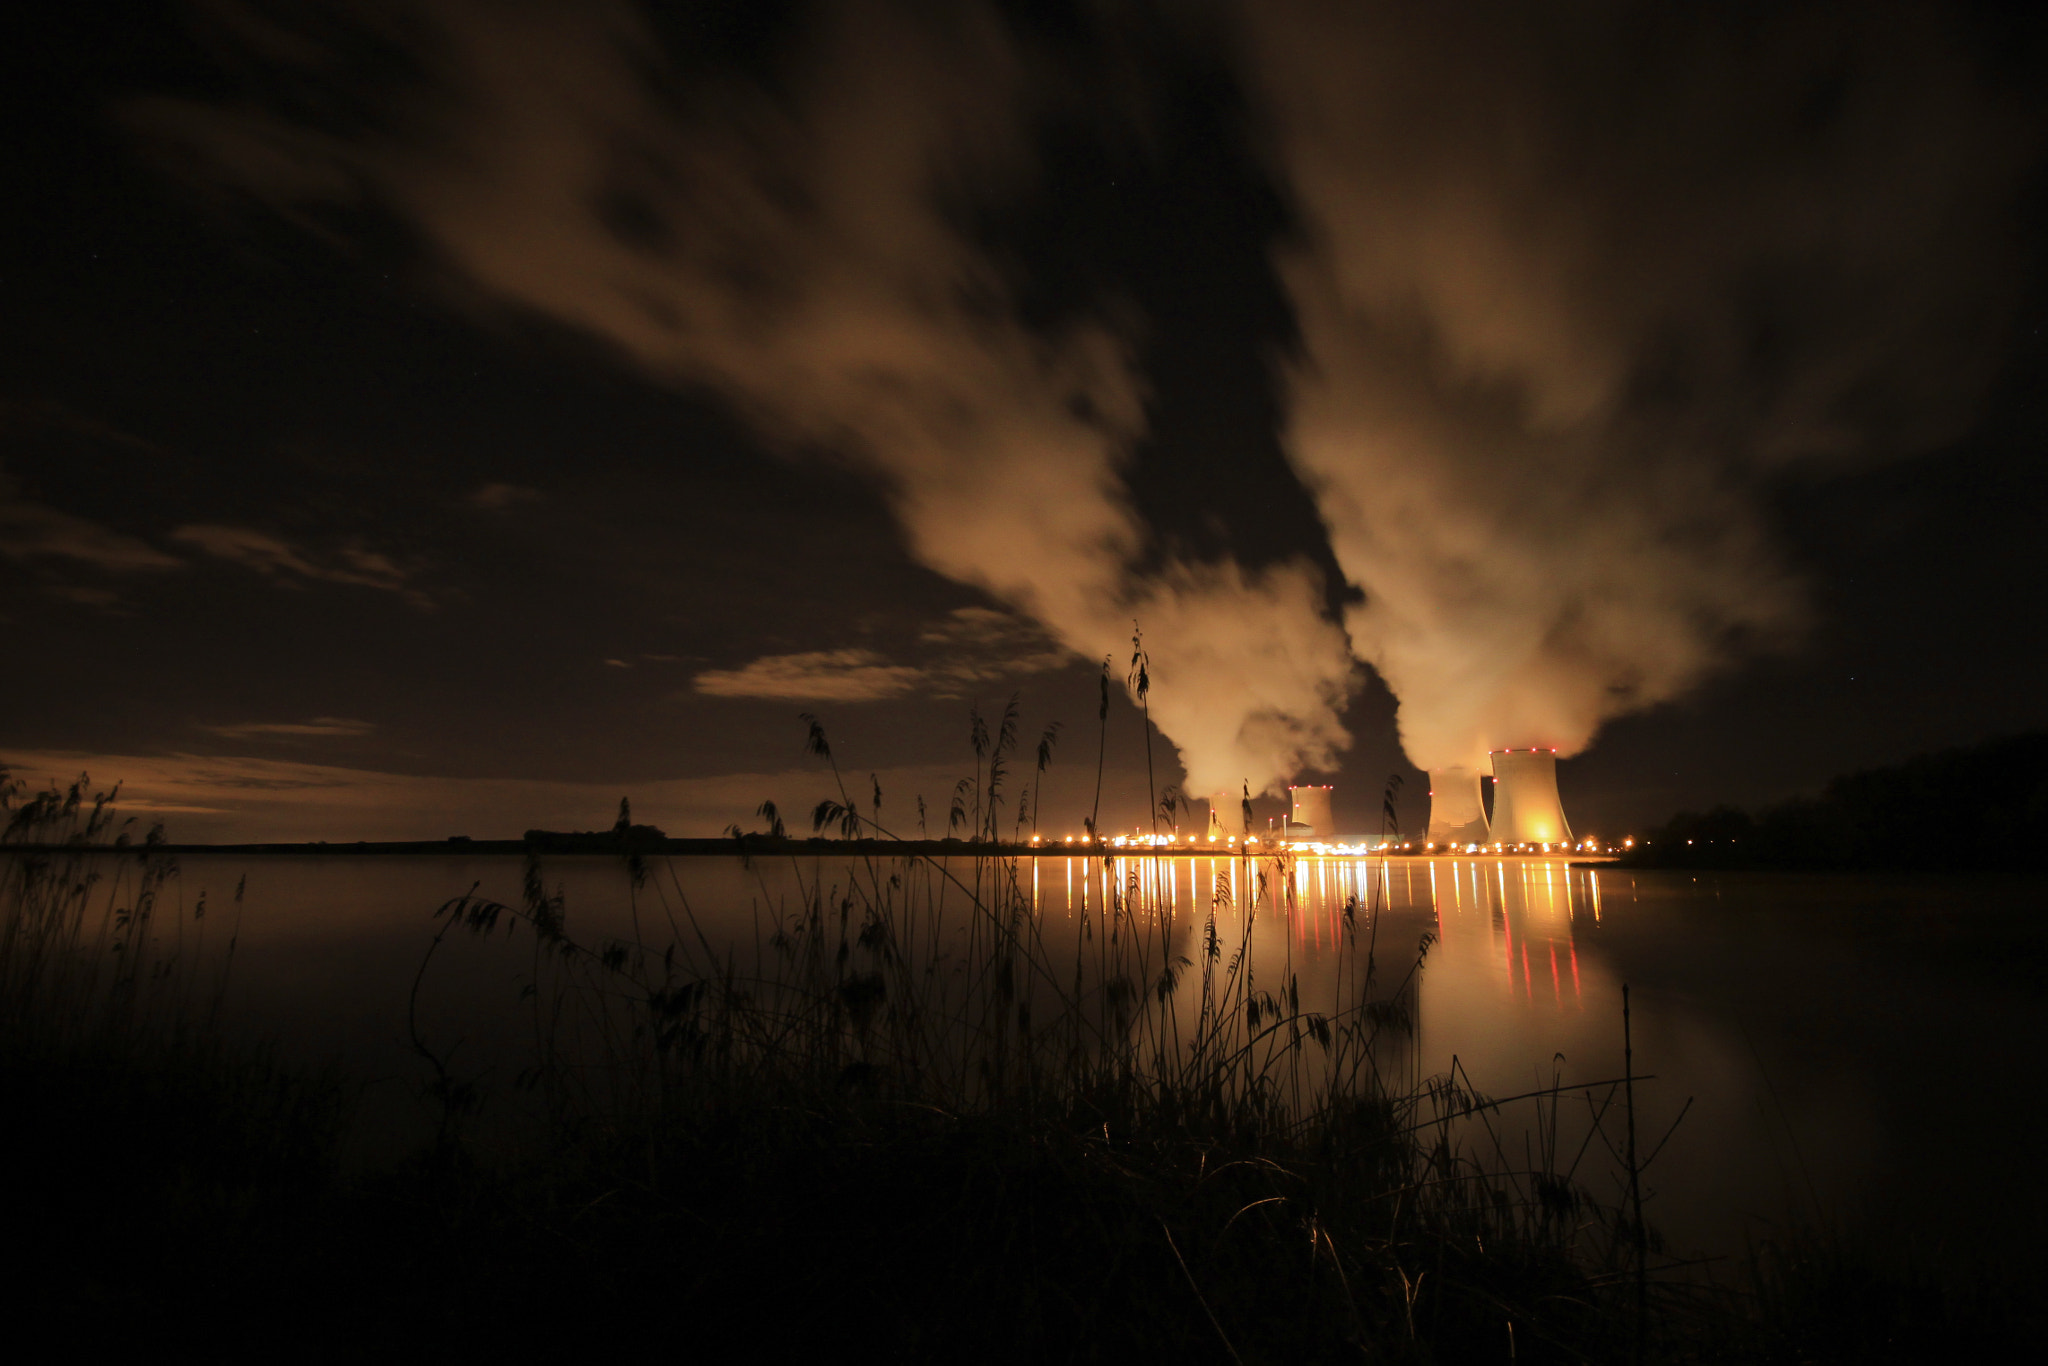 Photograph Nuclear Smoke by Maxime Barthelme on 500px